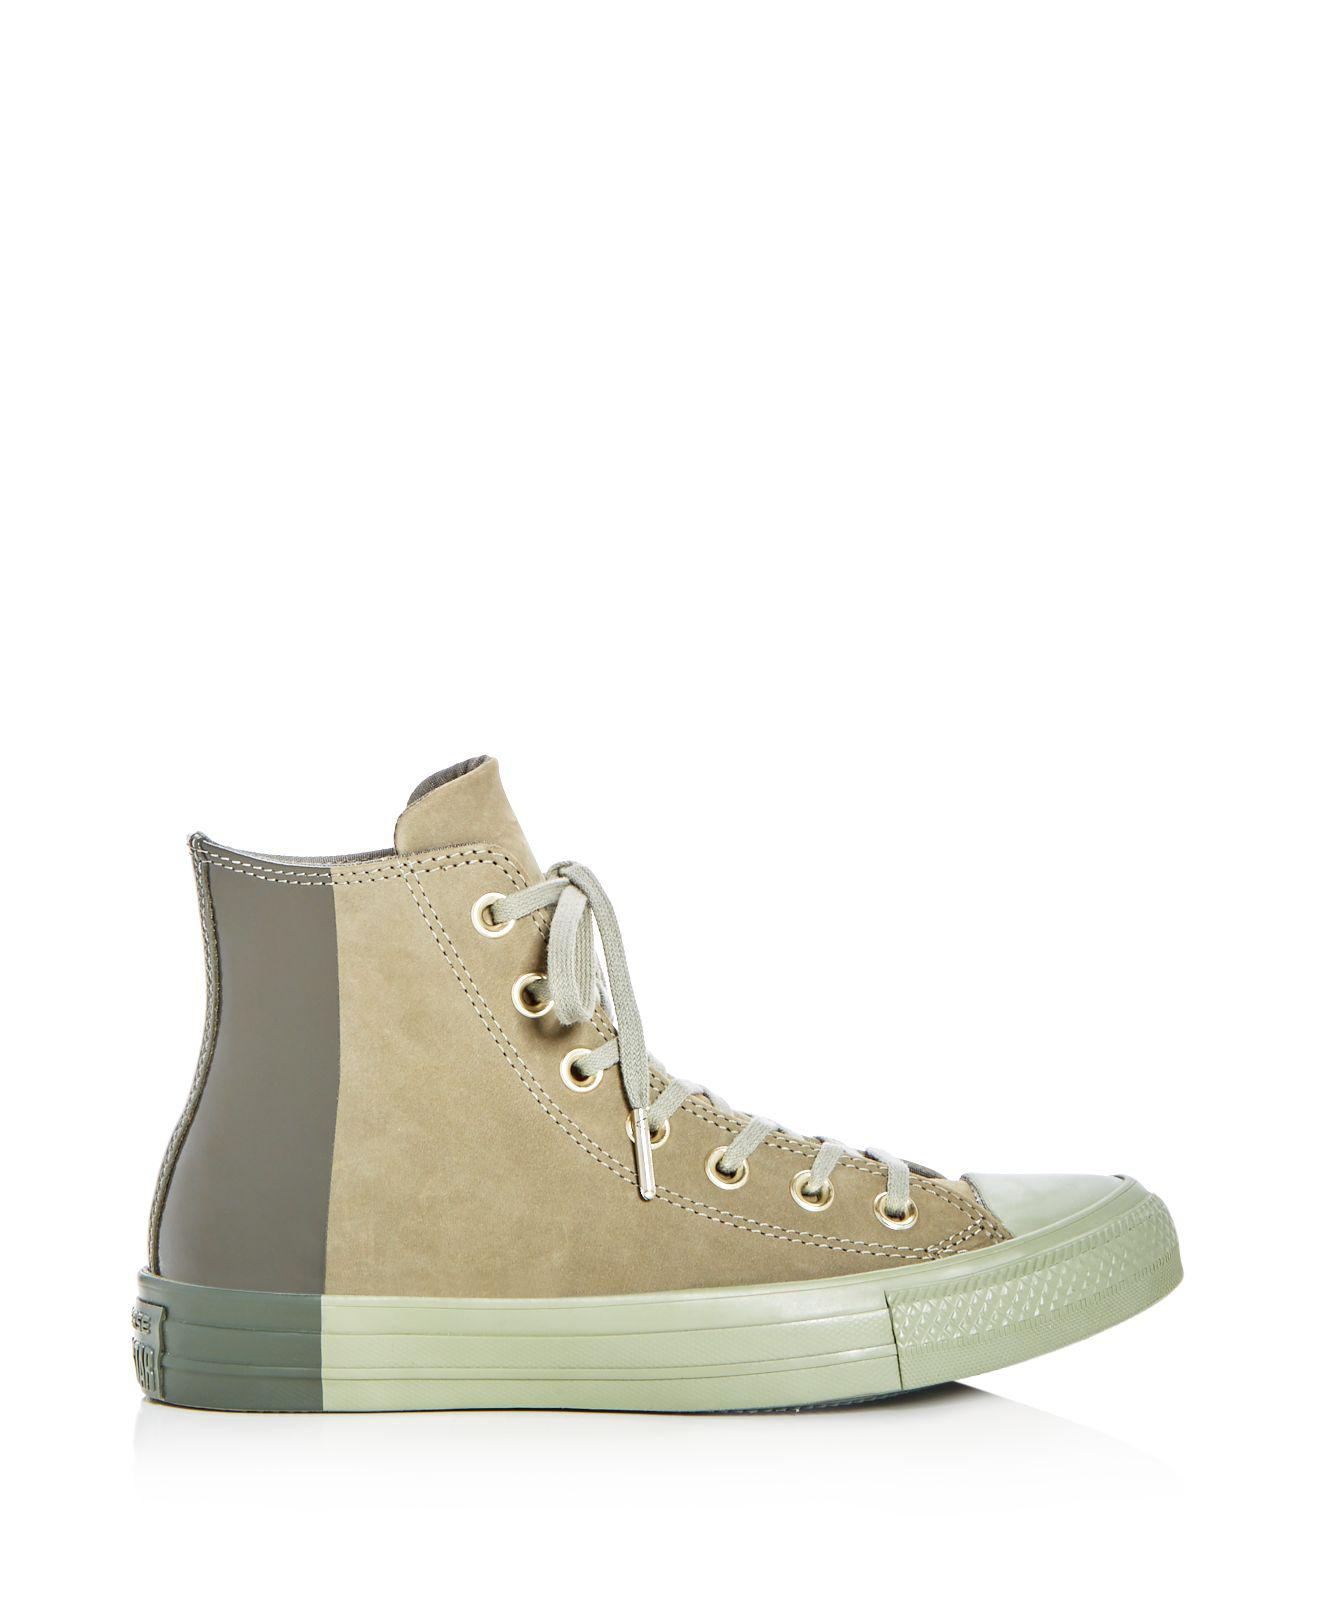 Converse Women's Chuck Taylor All Star Tonal Nubuck Leather High Top Sneakers